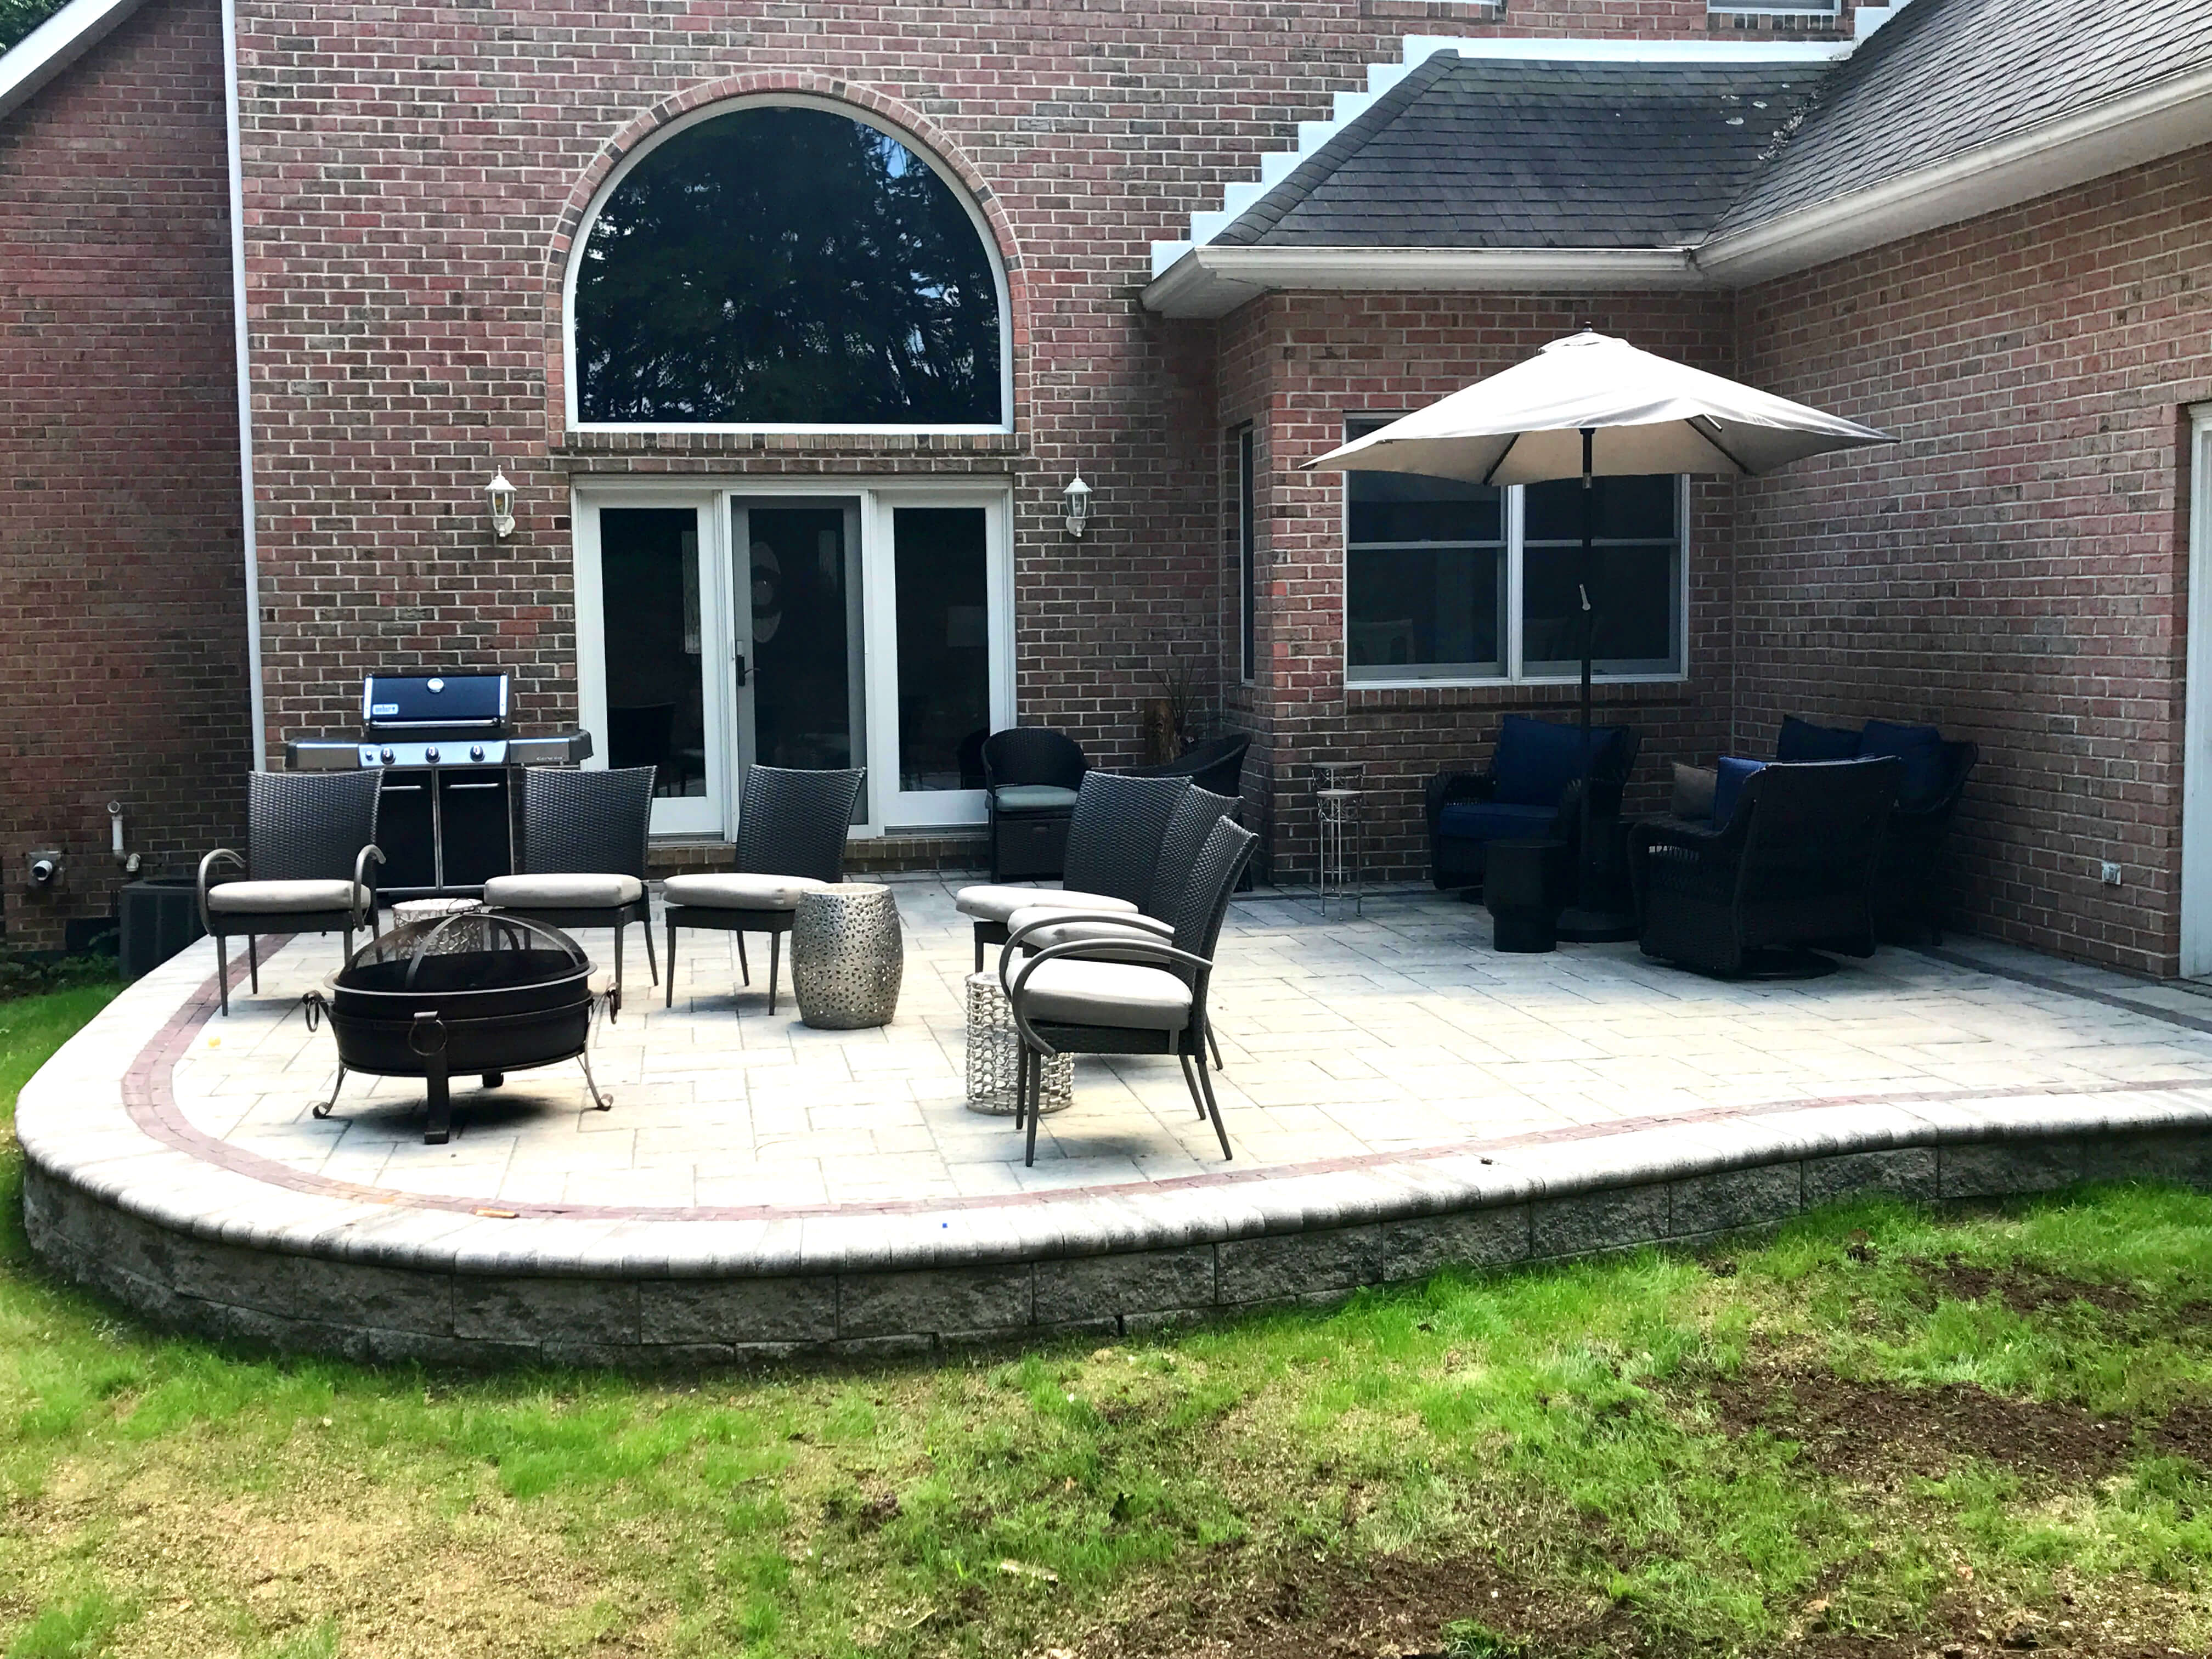 design pictures describes says a contractors plymouth gliadon kg great mn patio kent what makes landscape owner